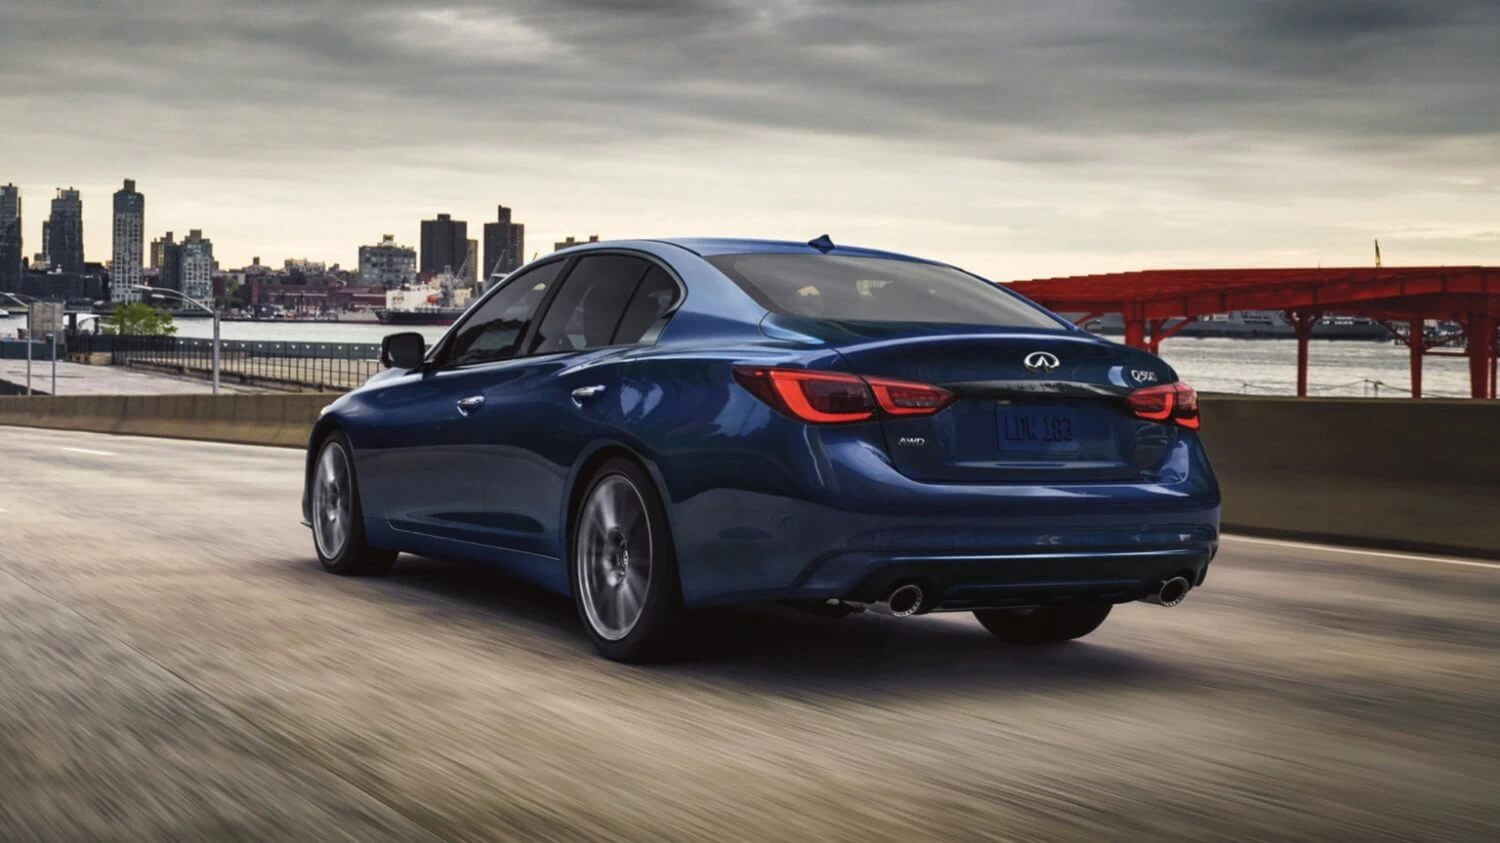 2021 Infiniti Q50 for sale with available smart key system and push button start at dealership